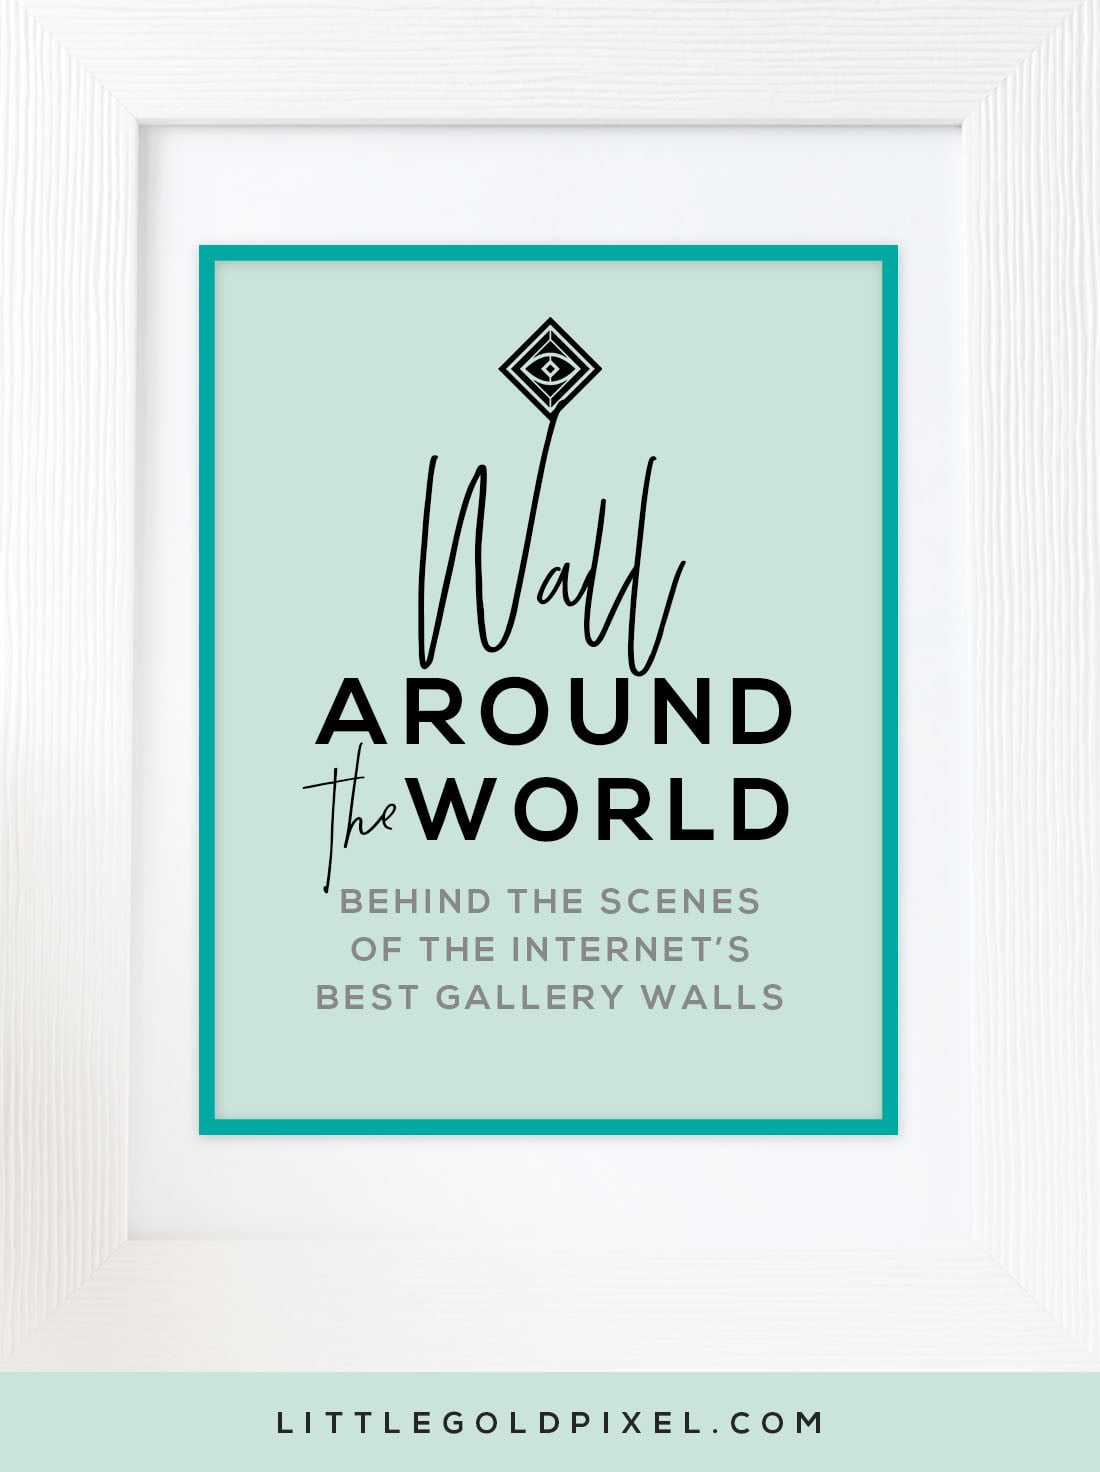 Wall Around the World: A Gallery Wall Series by Little Gold Pixel • Part 1: Granny Eclectic Gallery Walls in Texas